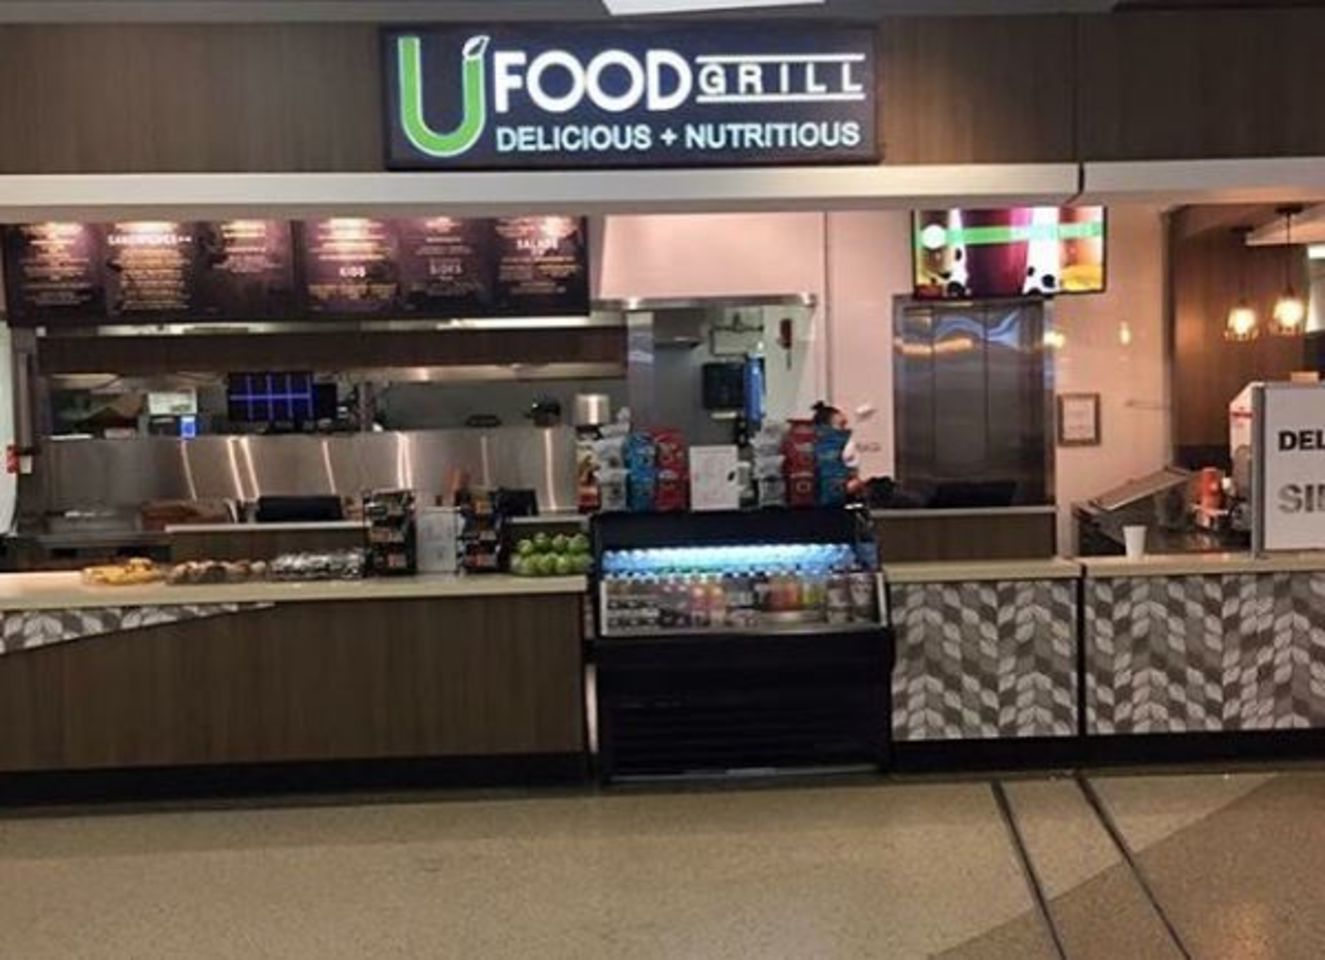 A photo of UFood Grill